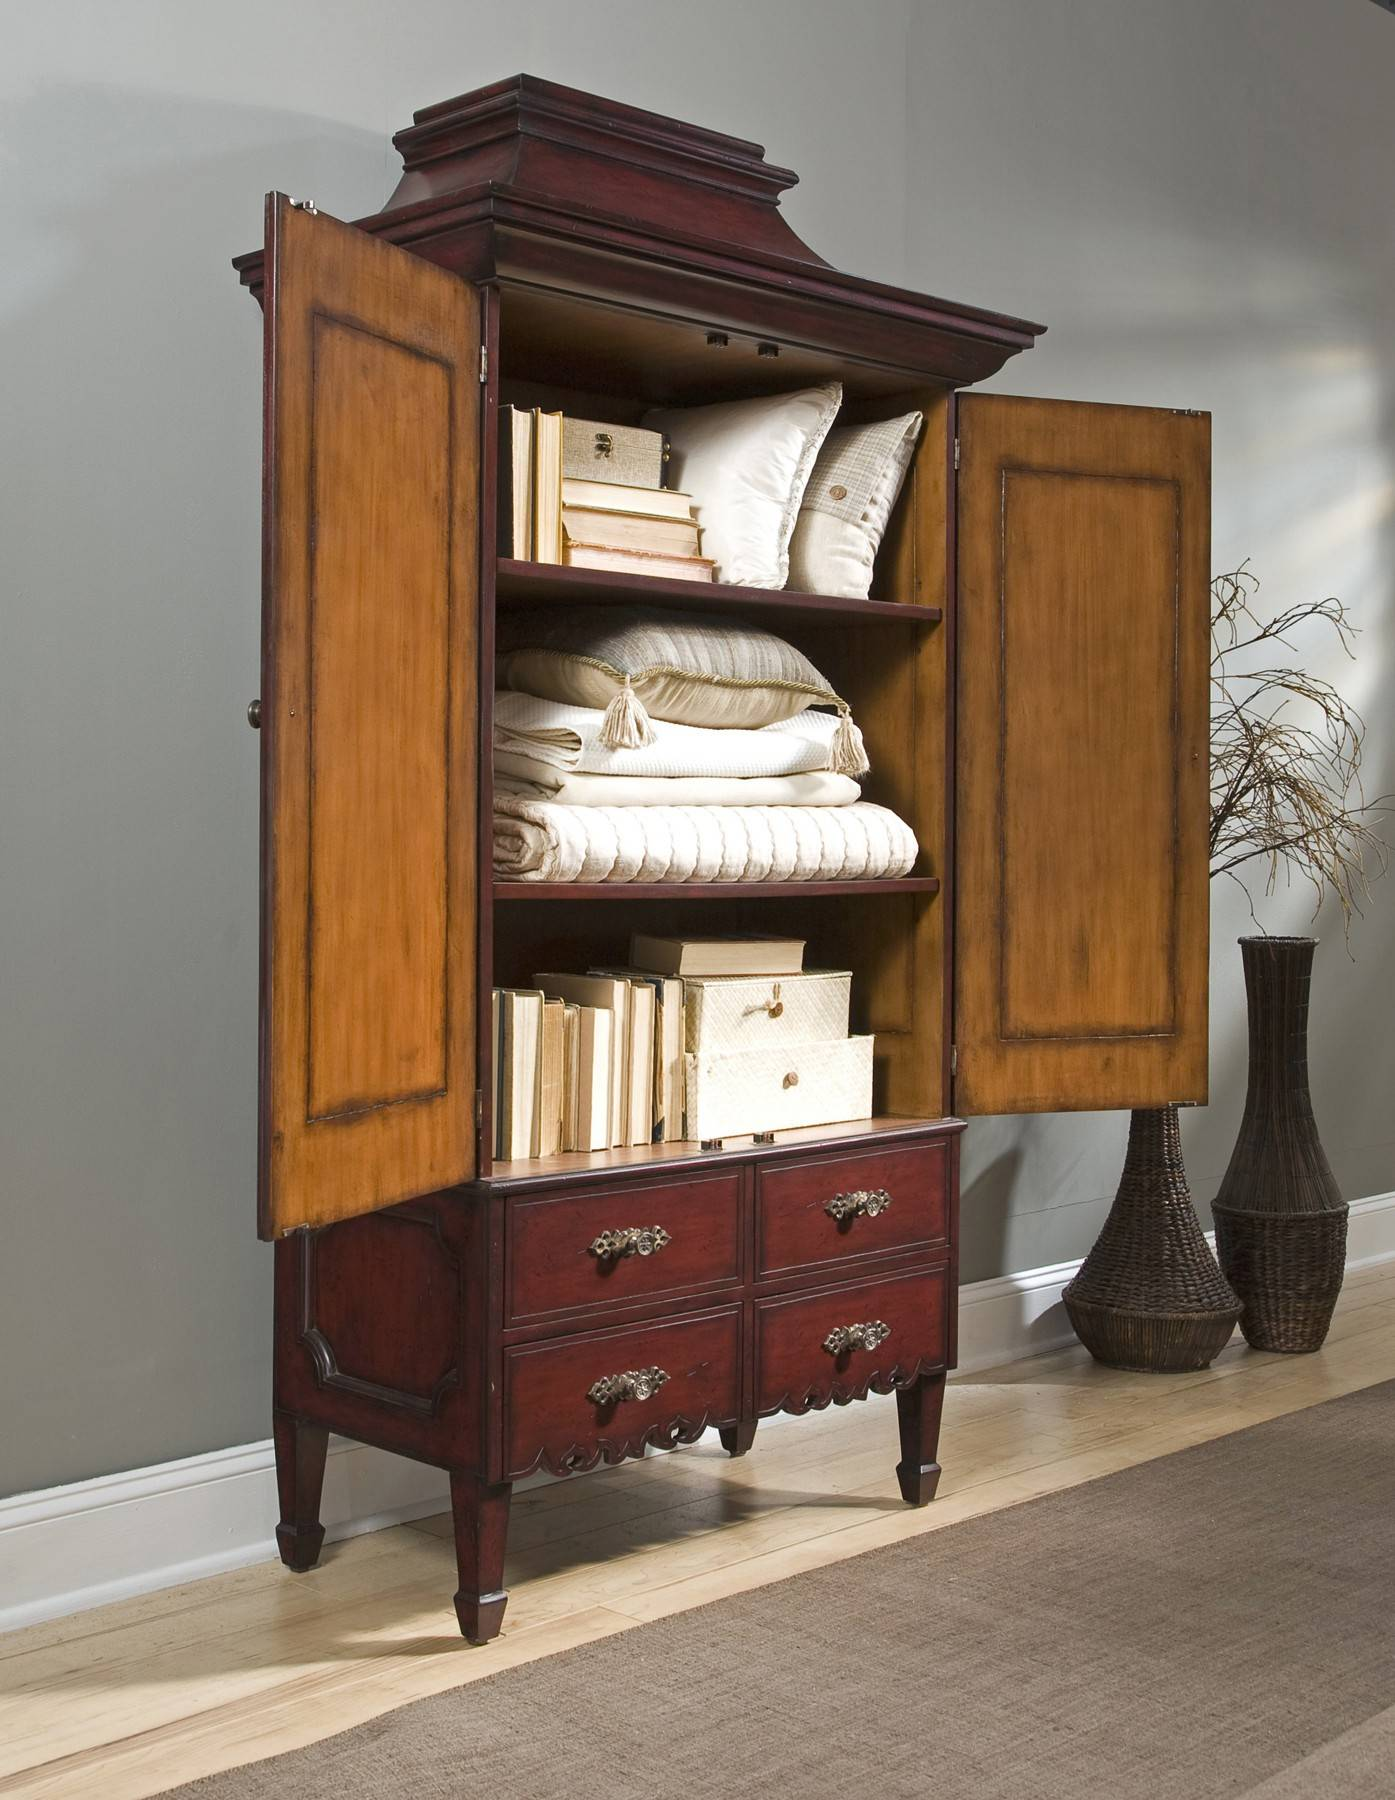 When an aging relative is downsizing into a new home, some of their furniture can be repurposed. An armoire can be used to store bed linens, pillows and memory books.